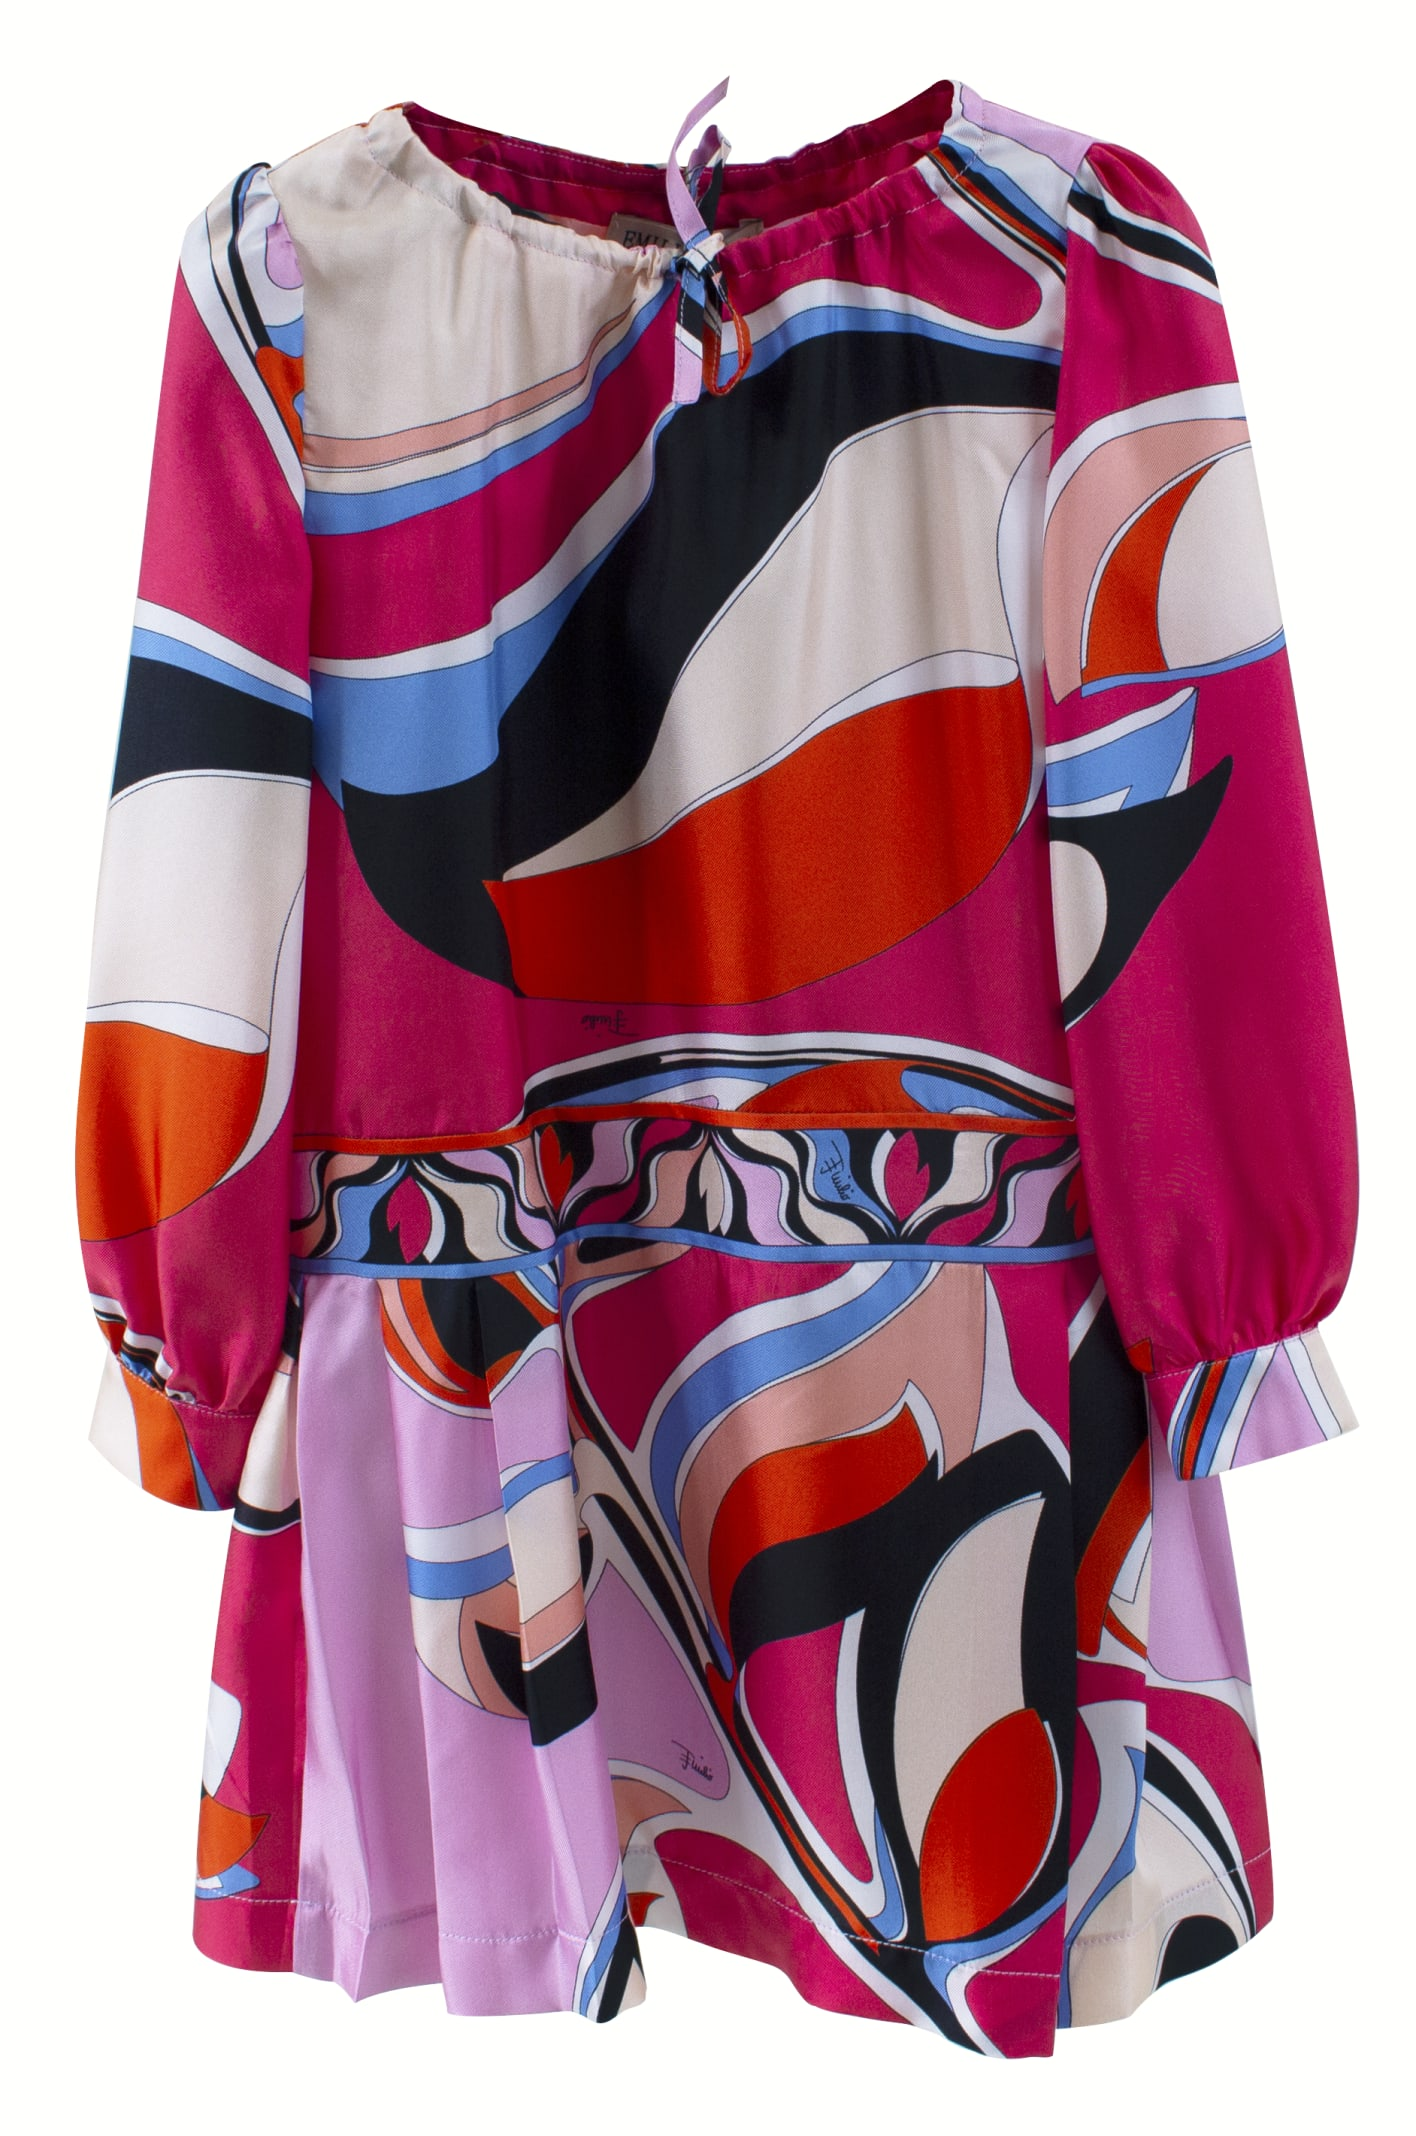 Buy Emilio Pucci Dress In Silk Girl Emilio Pucci online, shop Emilio Pucci with free shipping